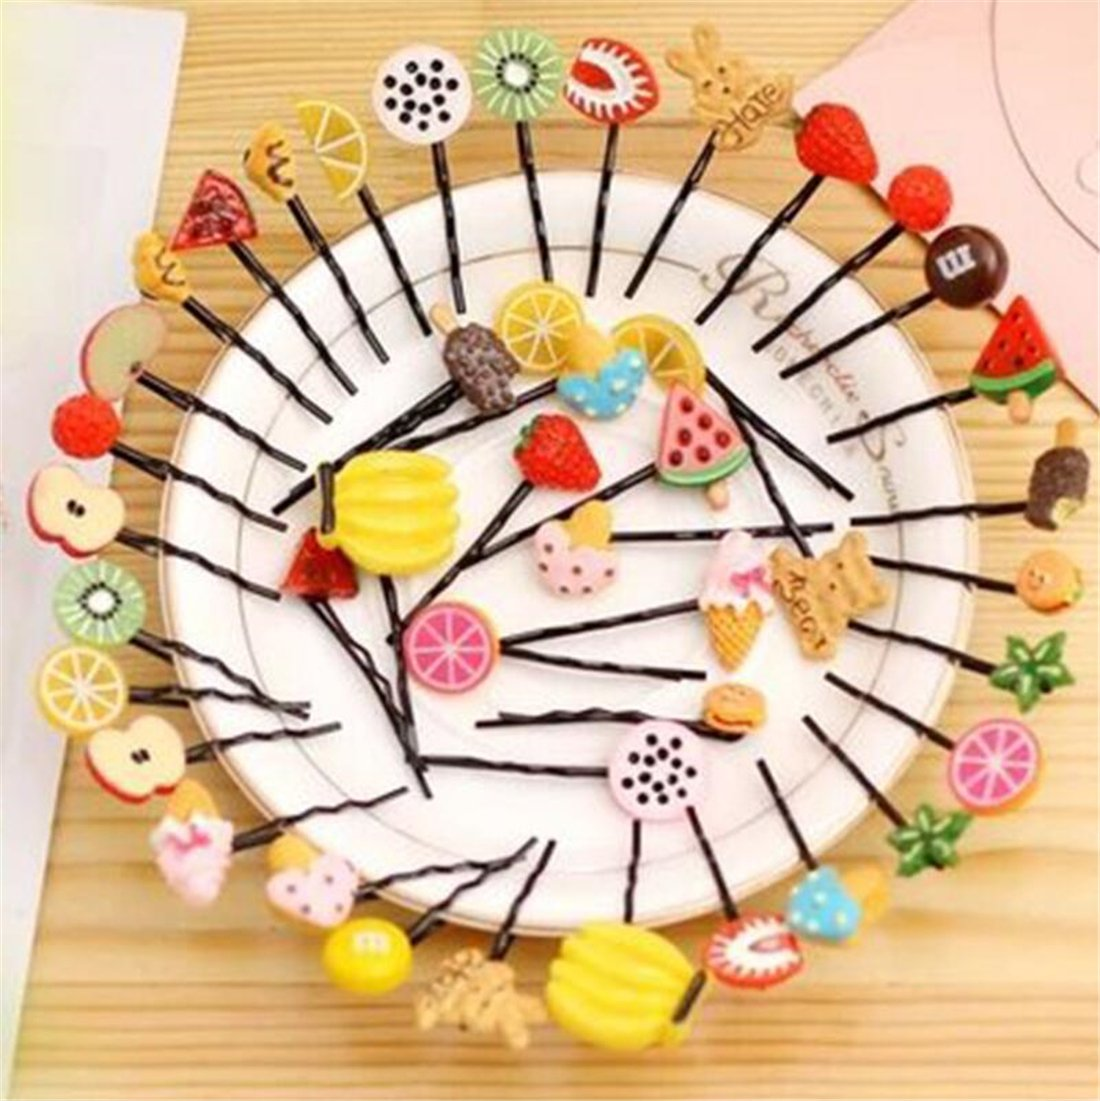 Tmrow 10PCS Lovely Fruit hairpin Small Hair Clip for Birthday Party